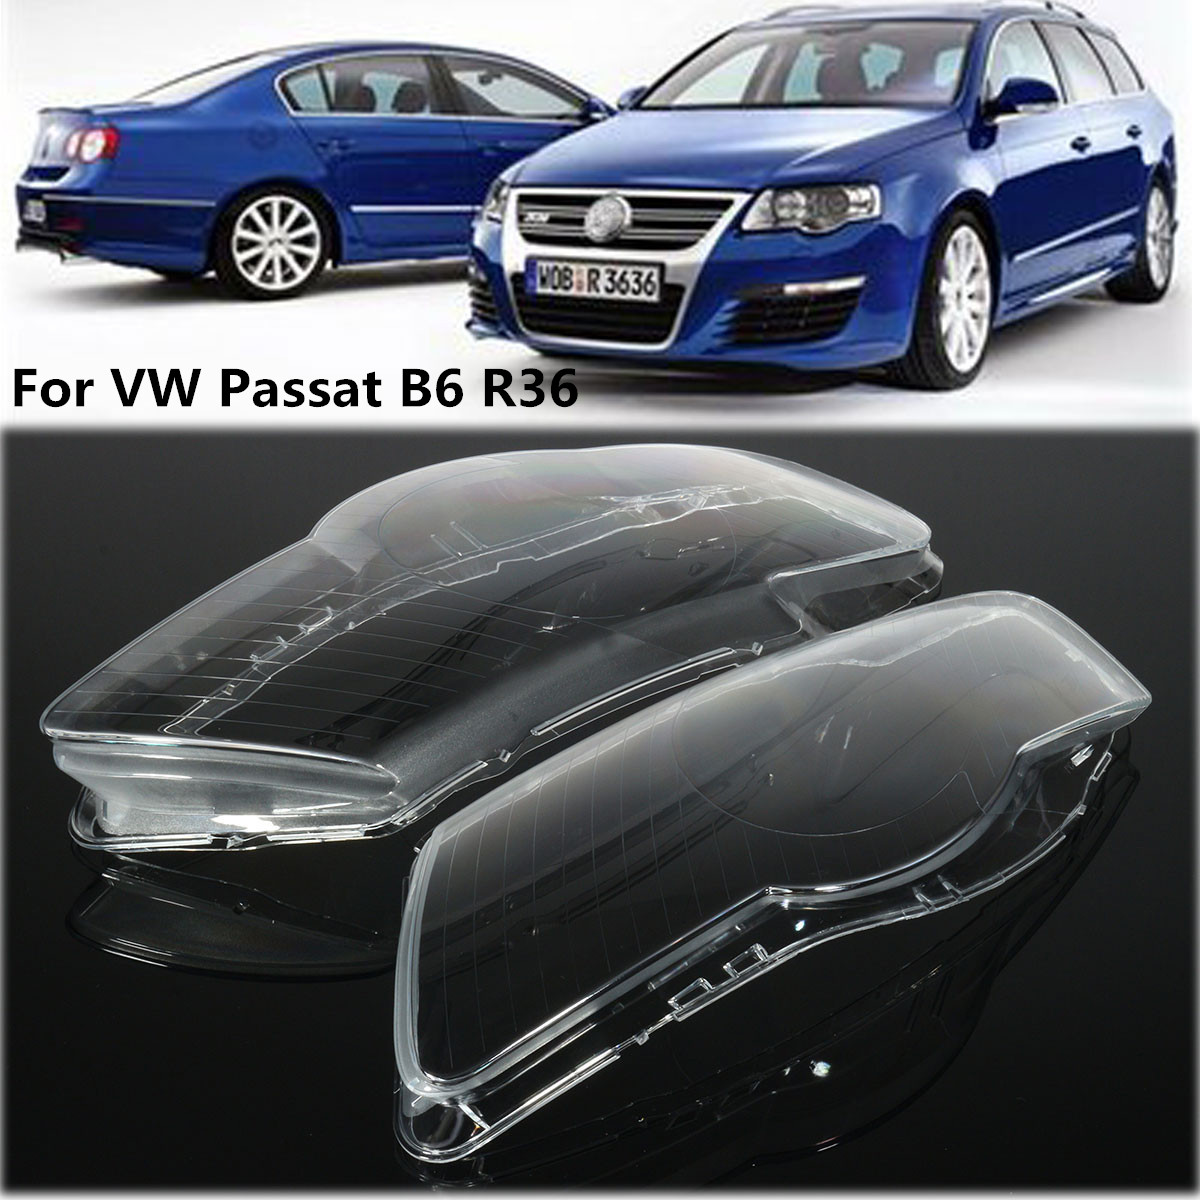 VW Passat 3C2 H7 501 55w Super White Xenon HID Low Dip//LED Side Light Bulbs Set